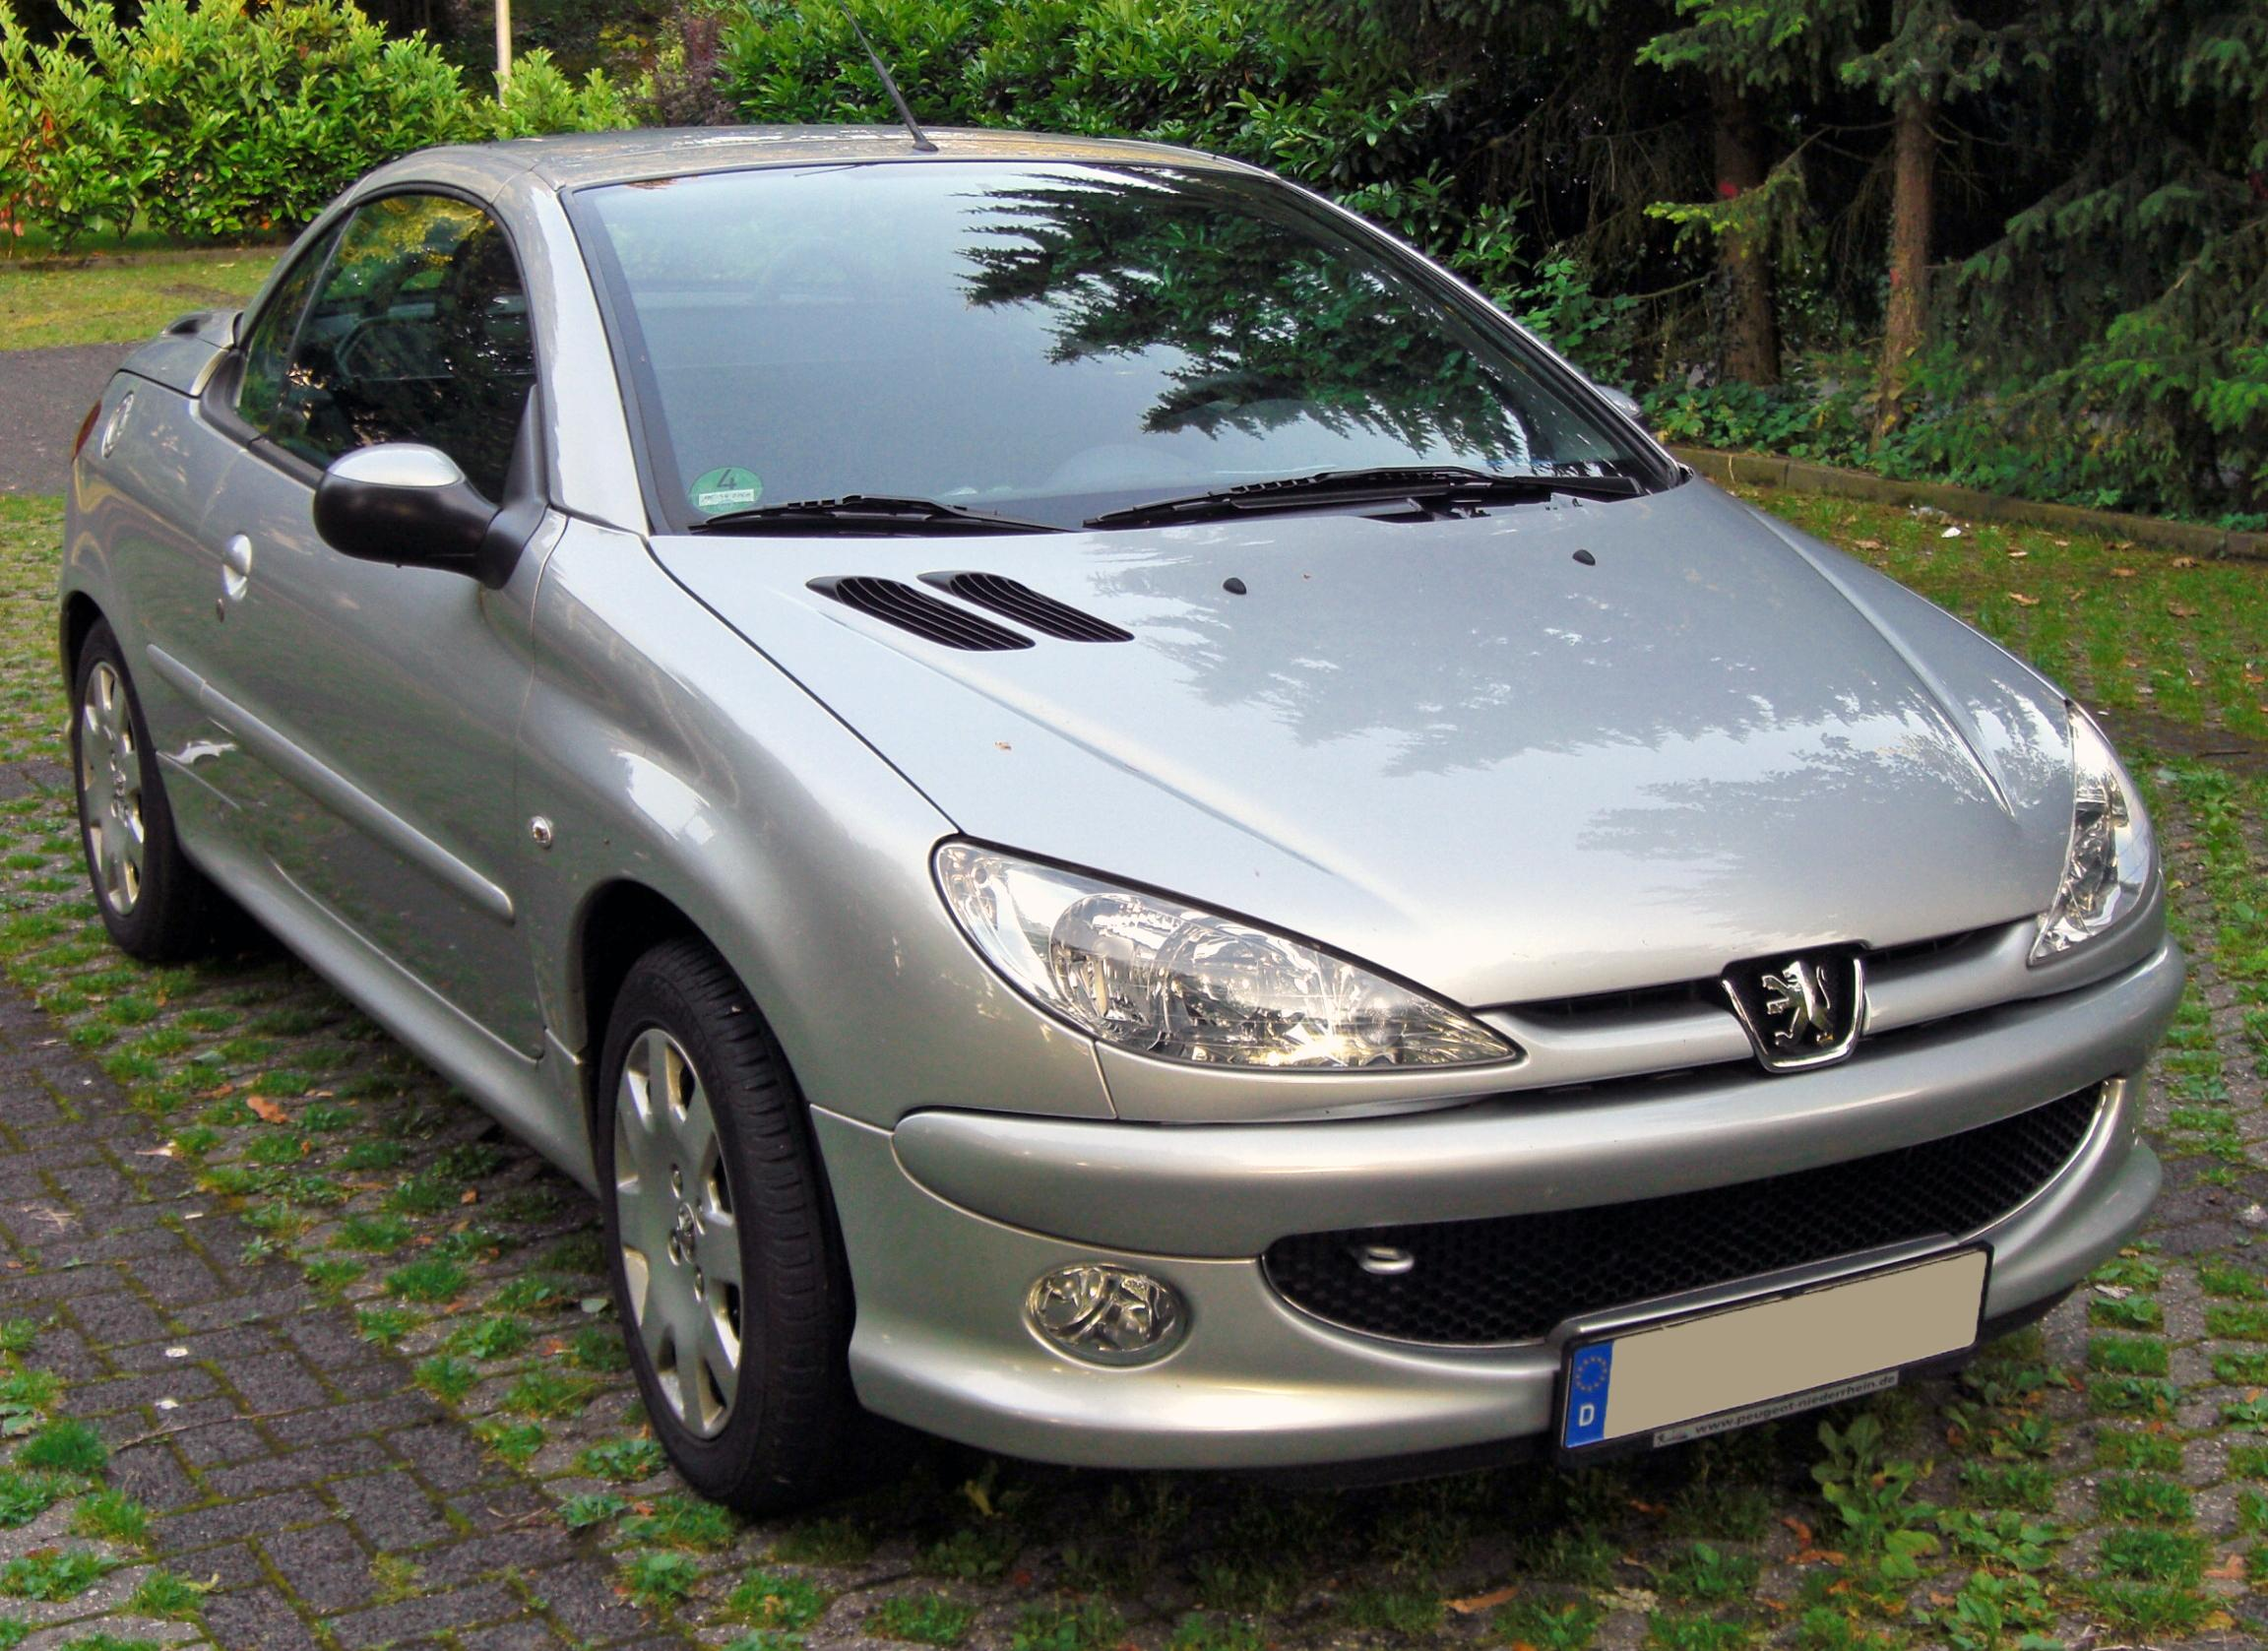 file peugeot 206 cc 20090612 front jpg wikimedia commons. Black Bedroom Furniture Sets. Home Design Ideas